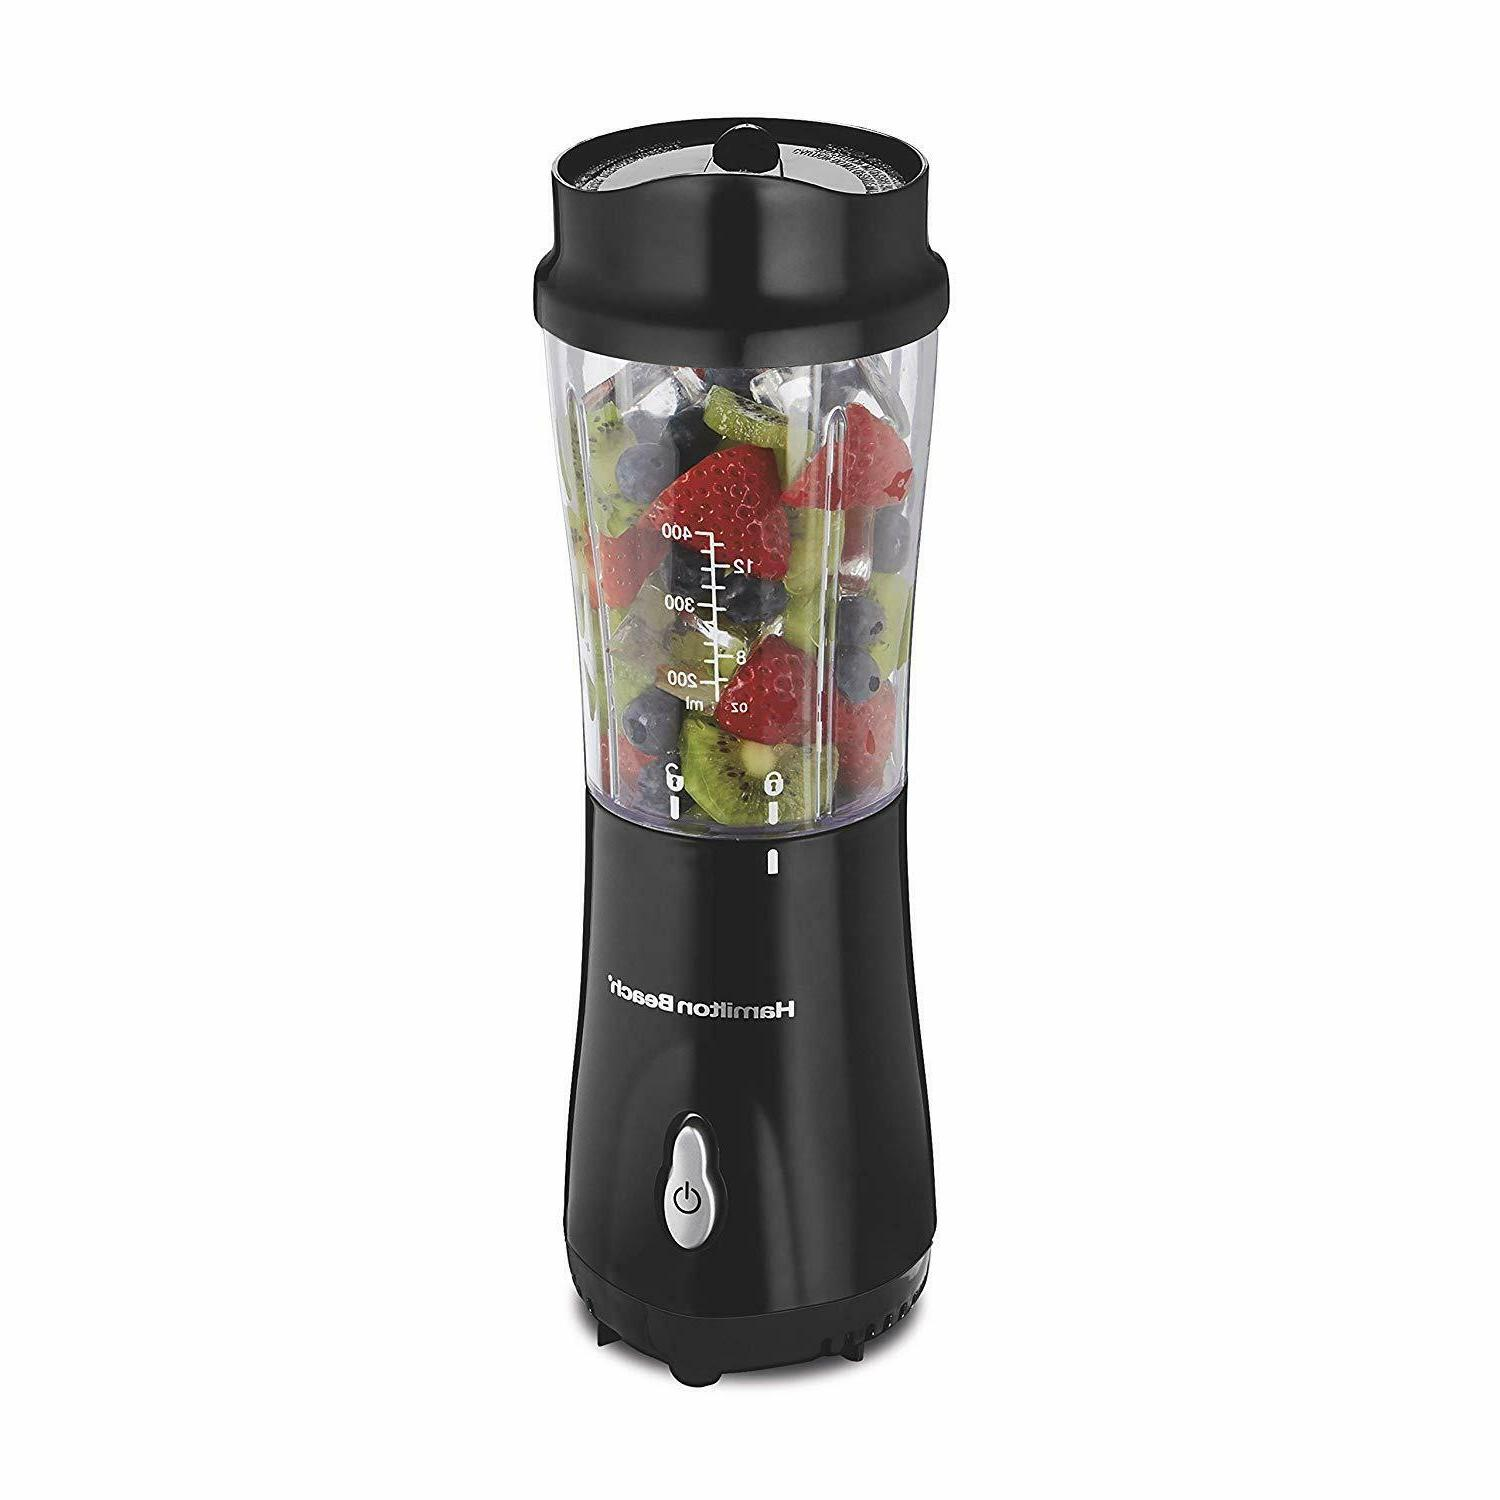 51101b single serve personal blender with travel